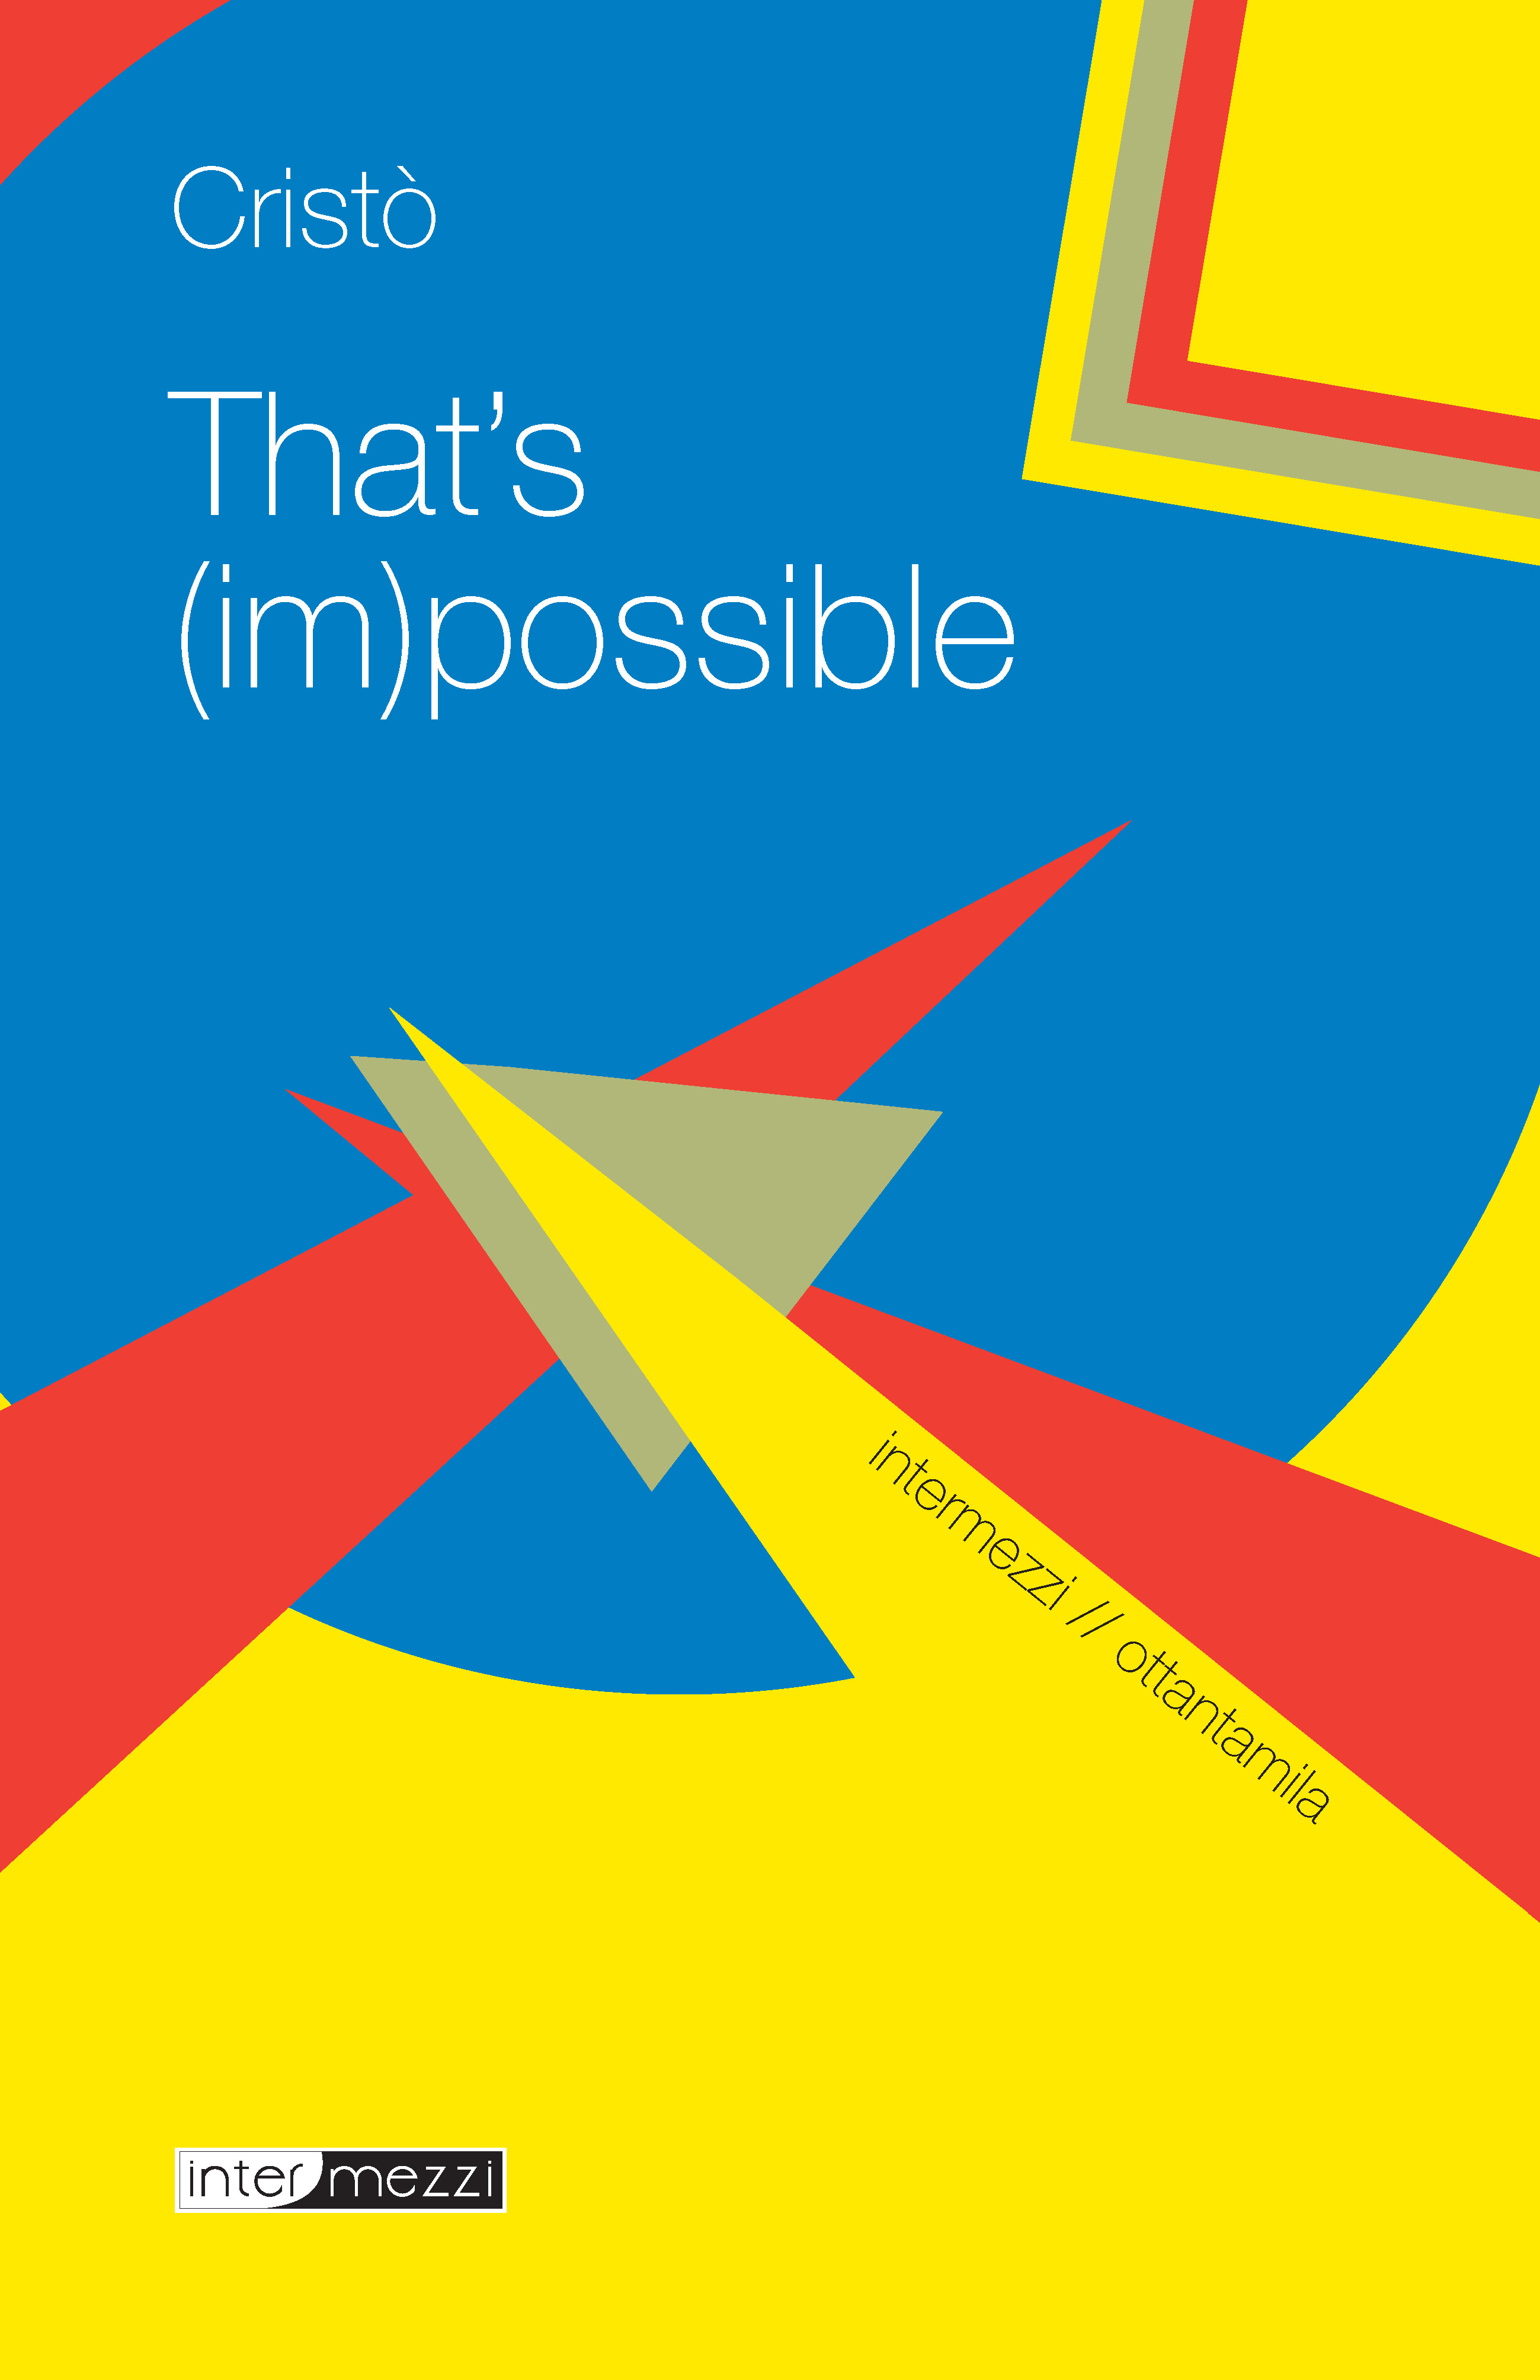 That's (im)possible!